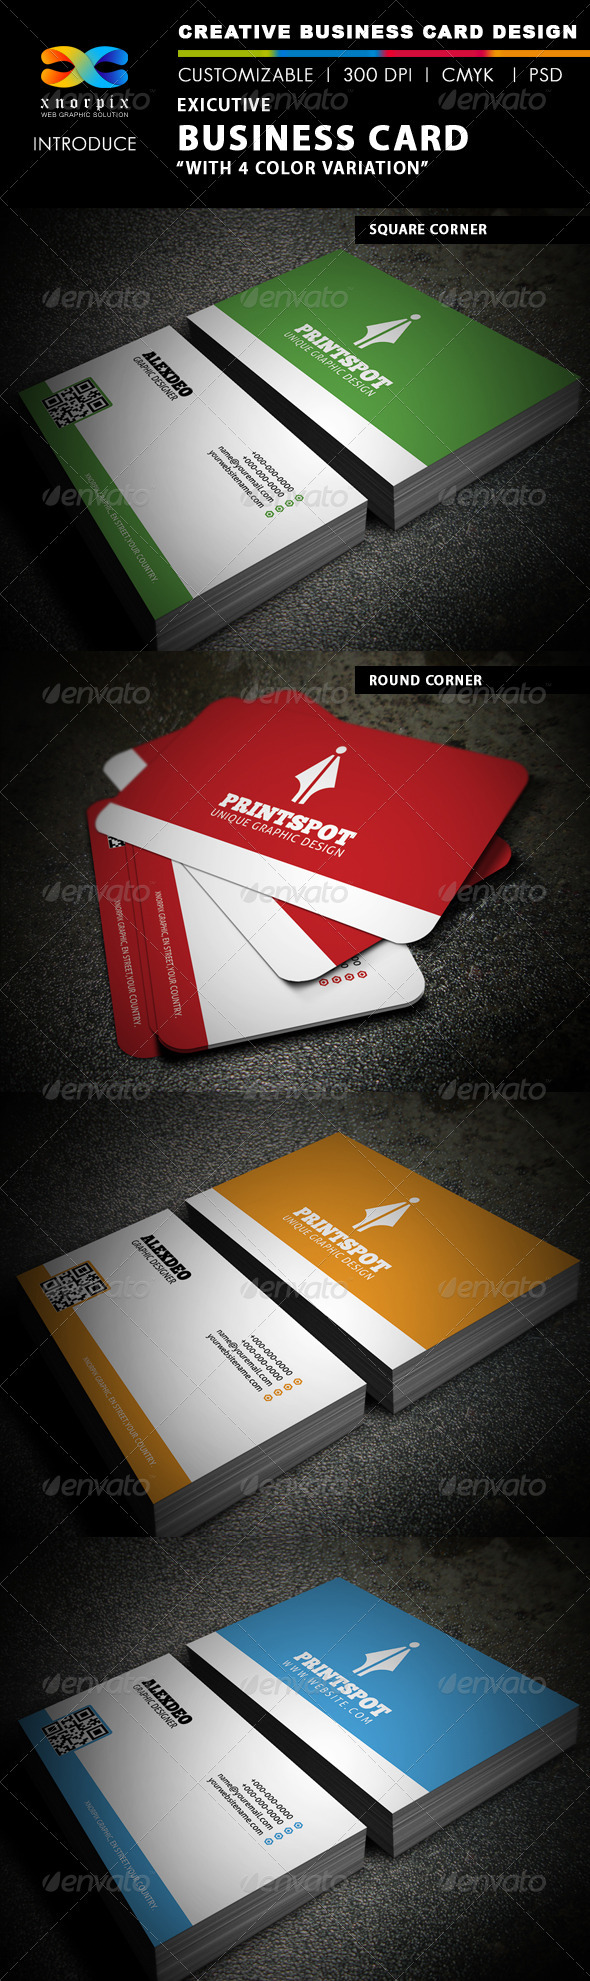 Executive Business Card - Creative Business Cards